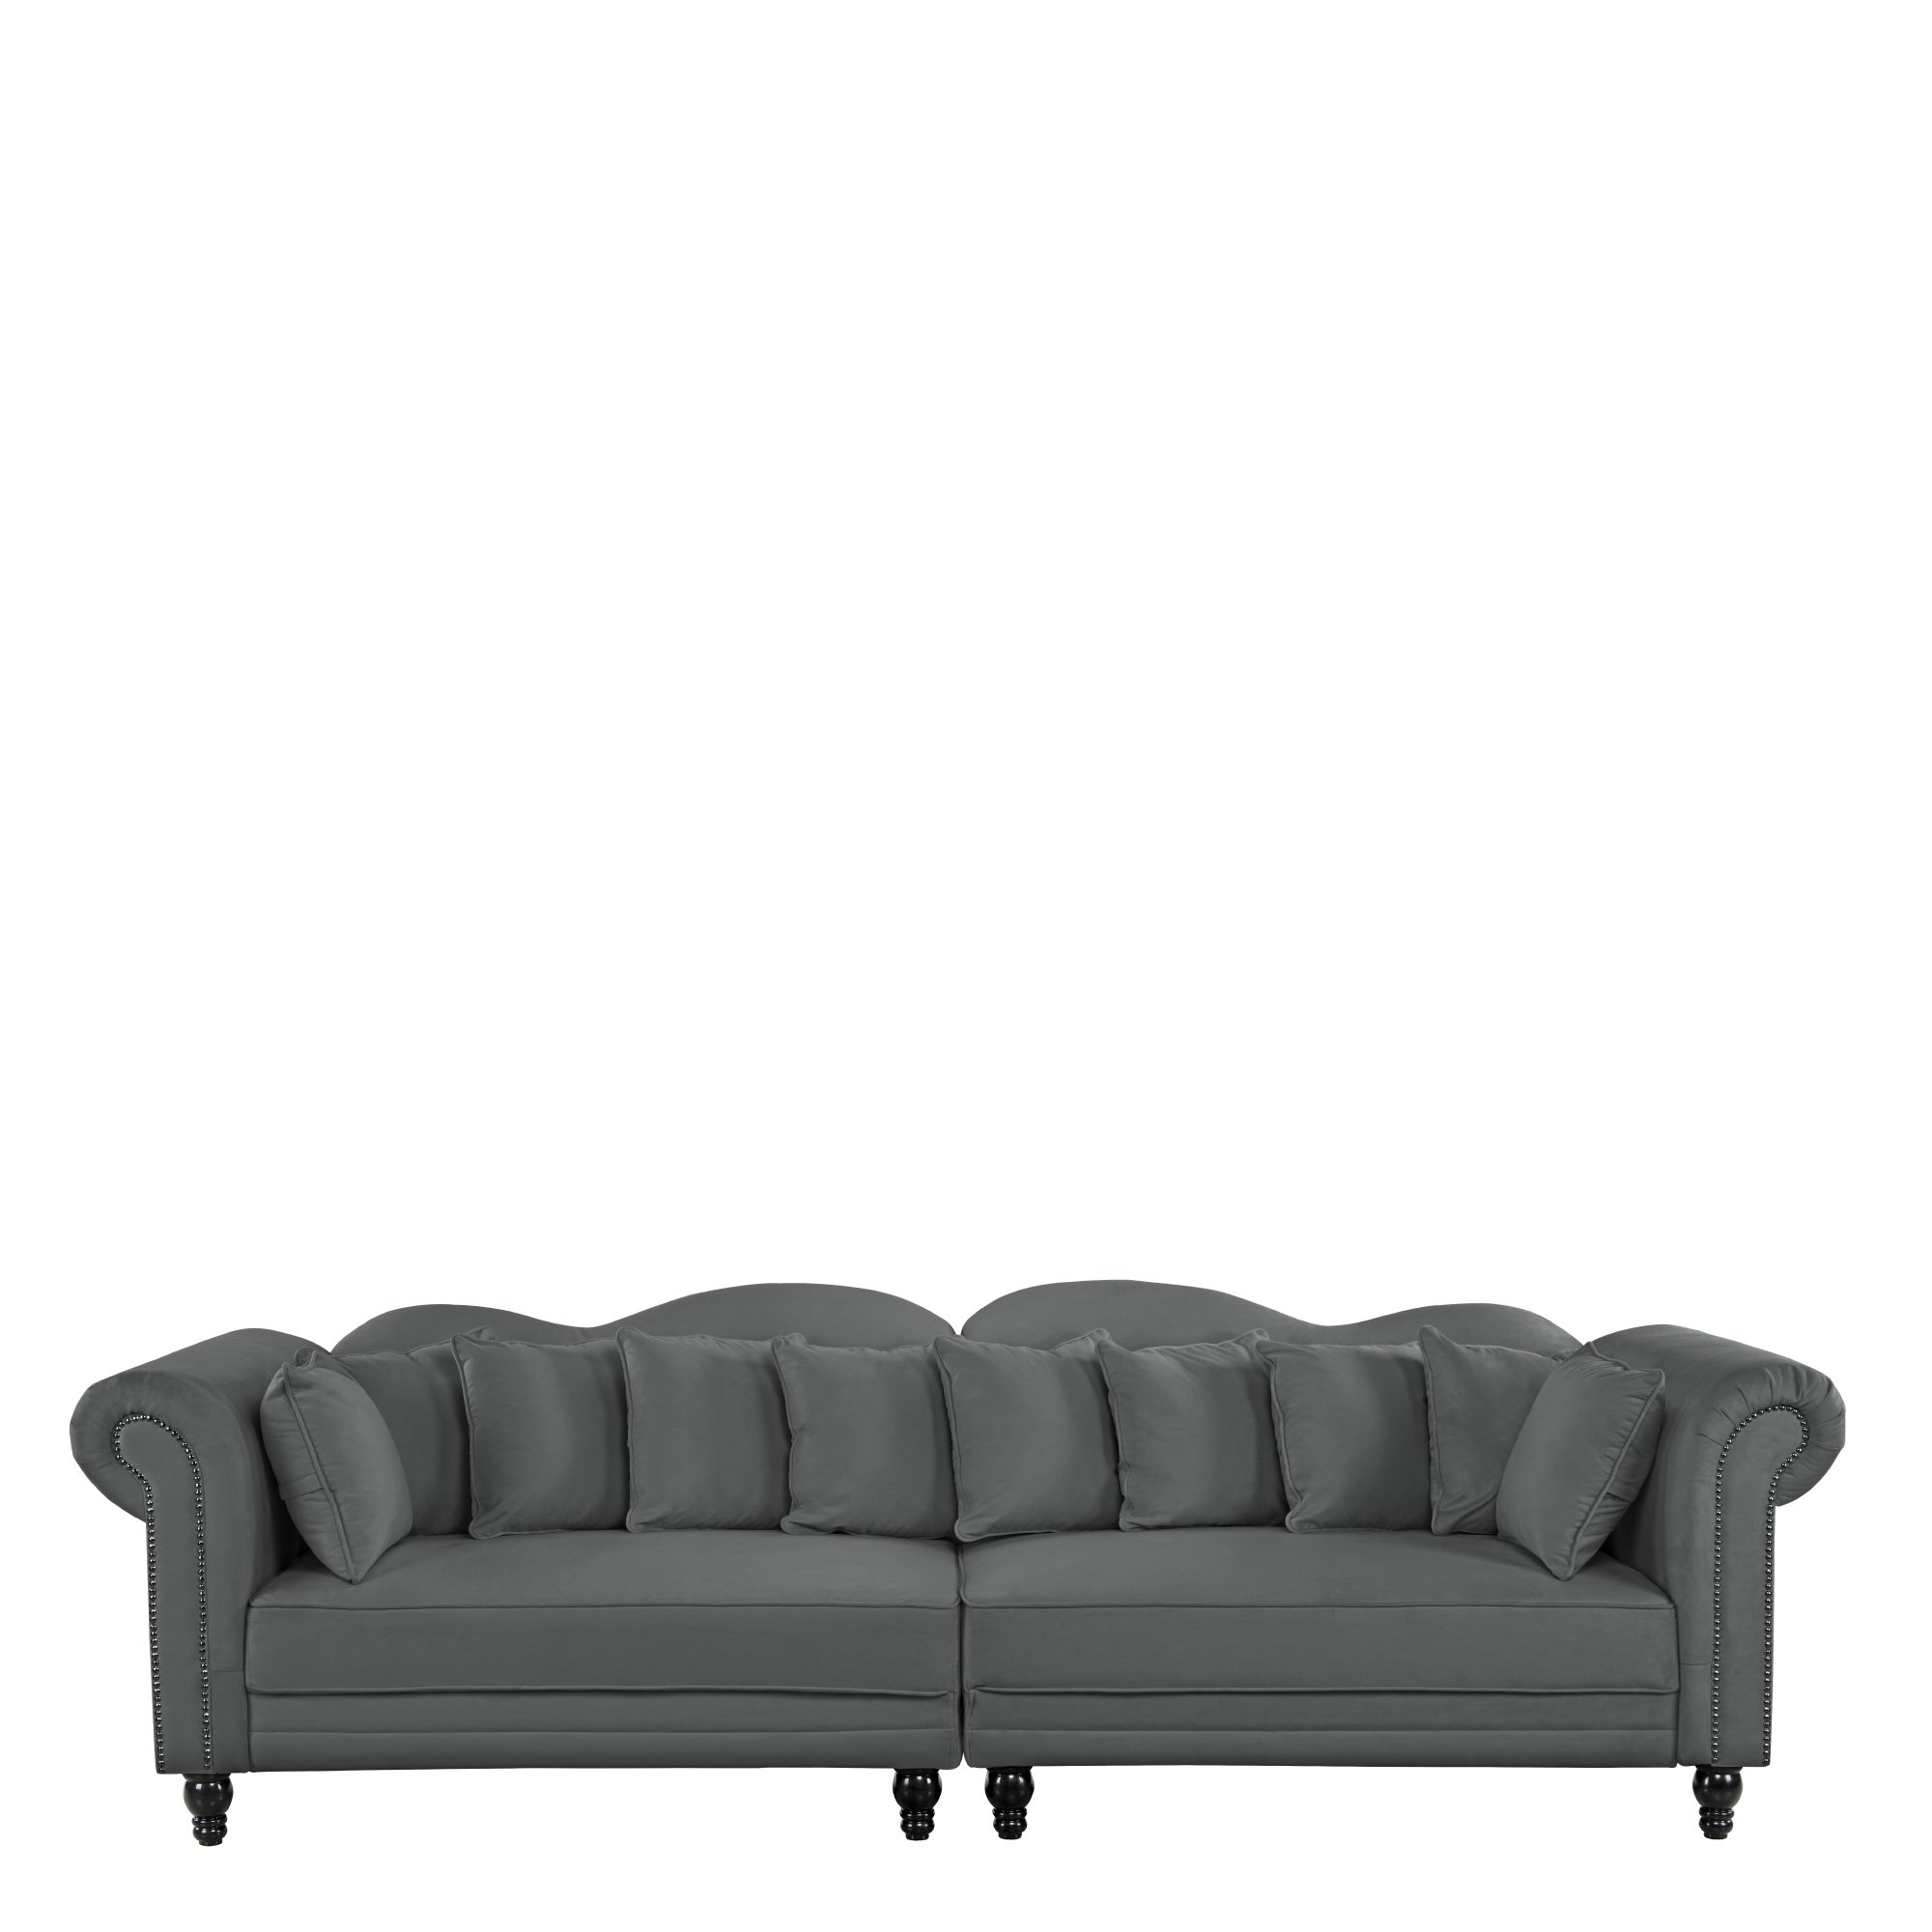 2 Pc Large Chesterfield Sofa Velvet Couch W Scroll Arms Nailheads Dark Grey